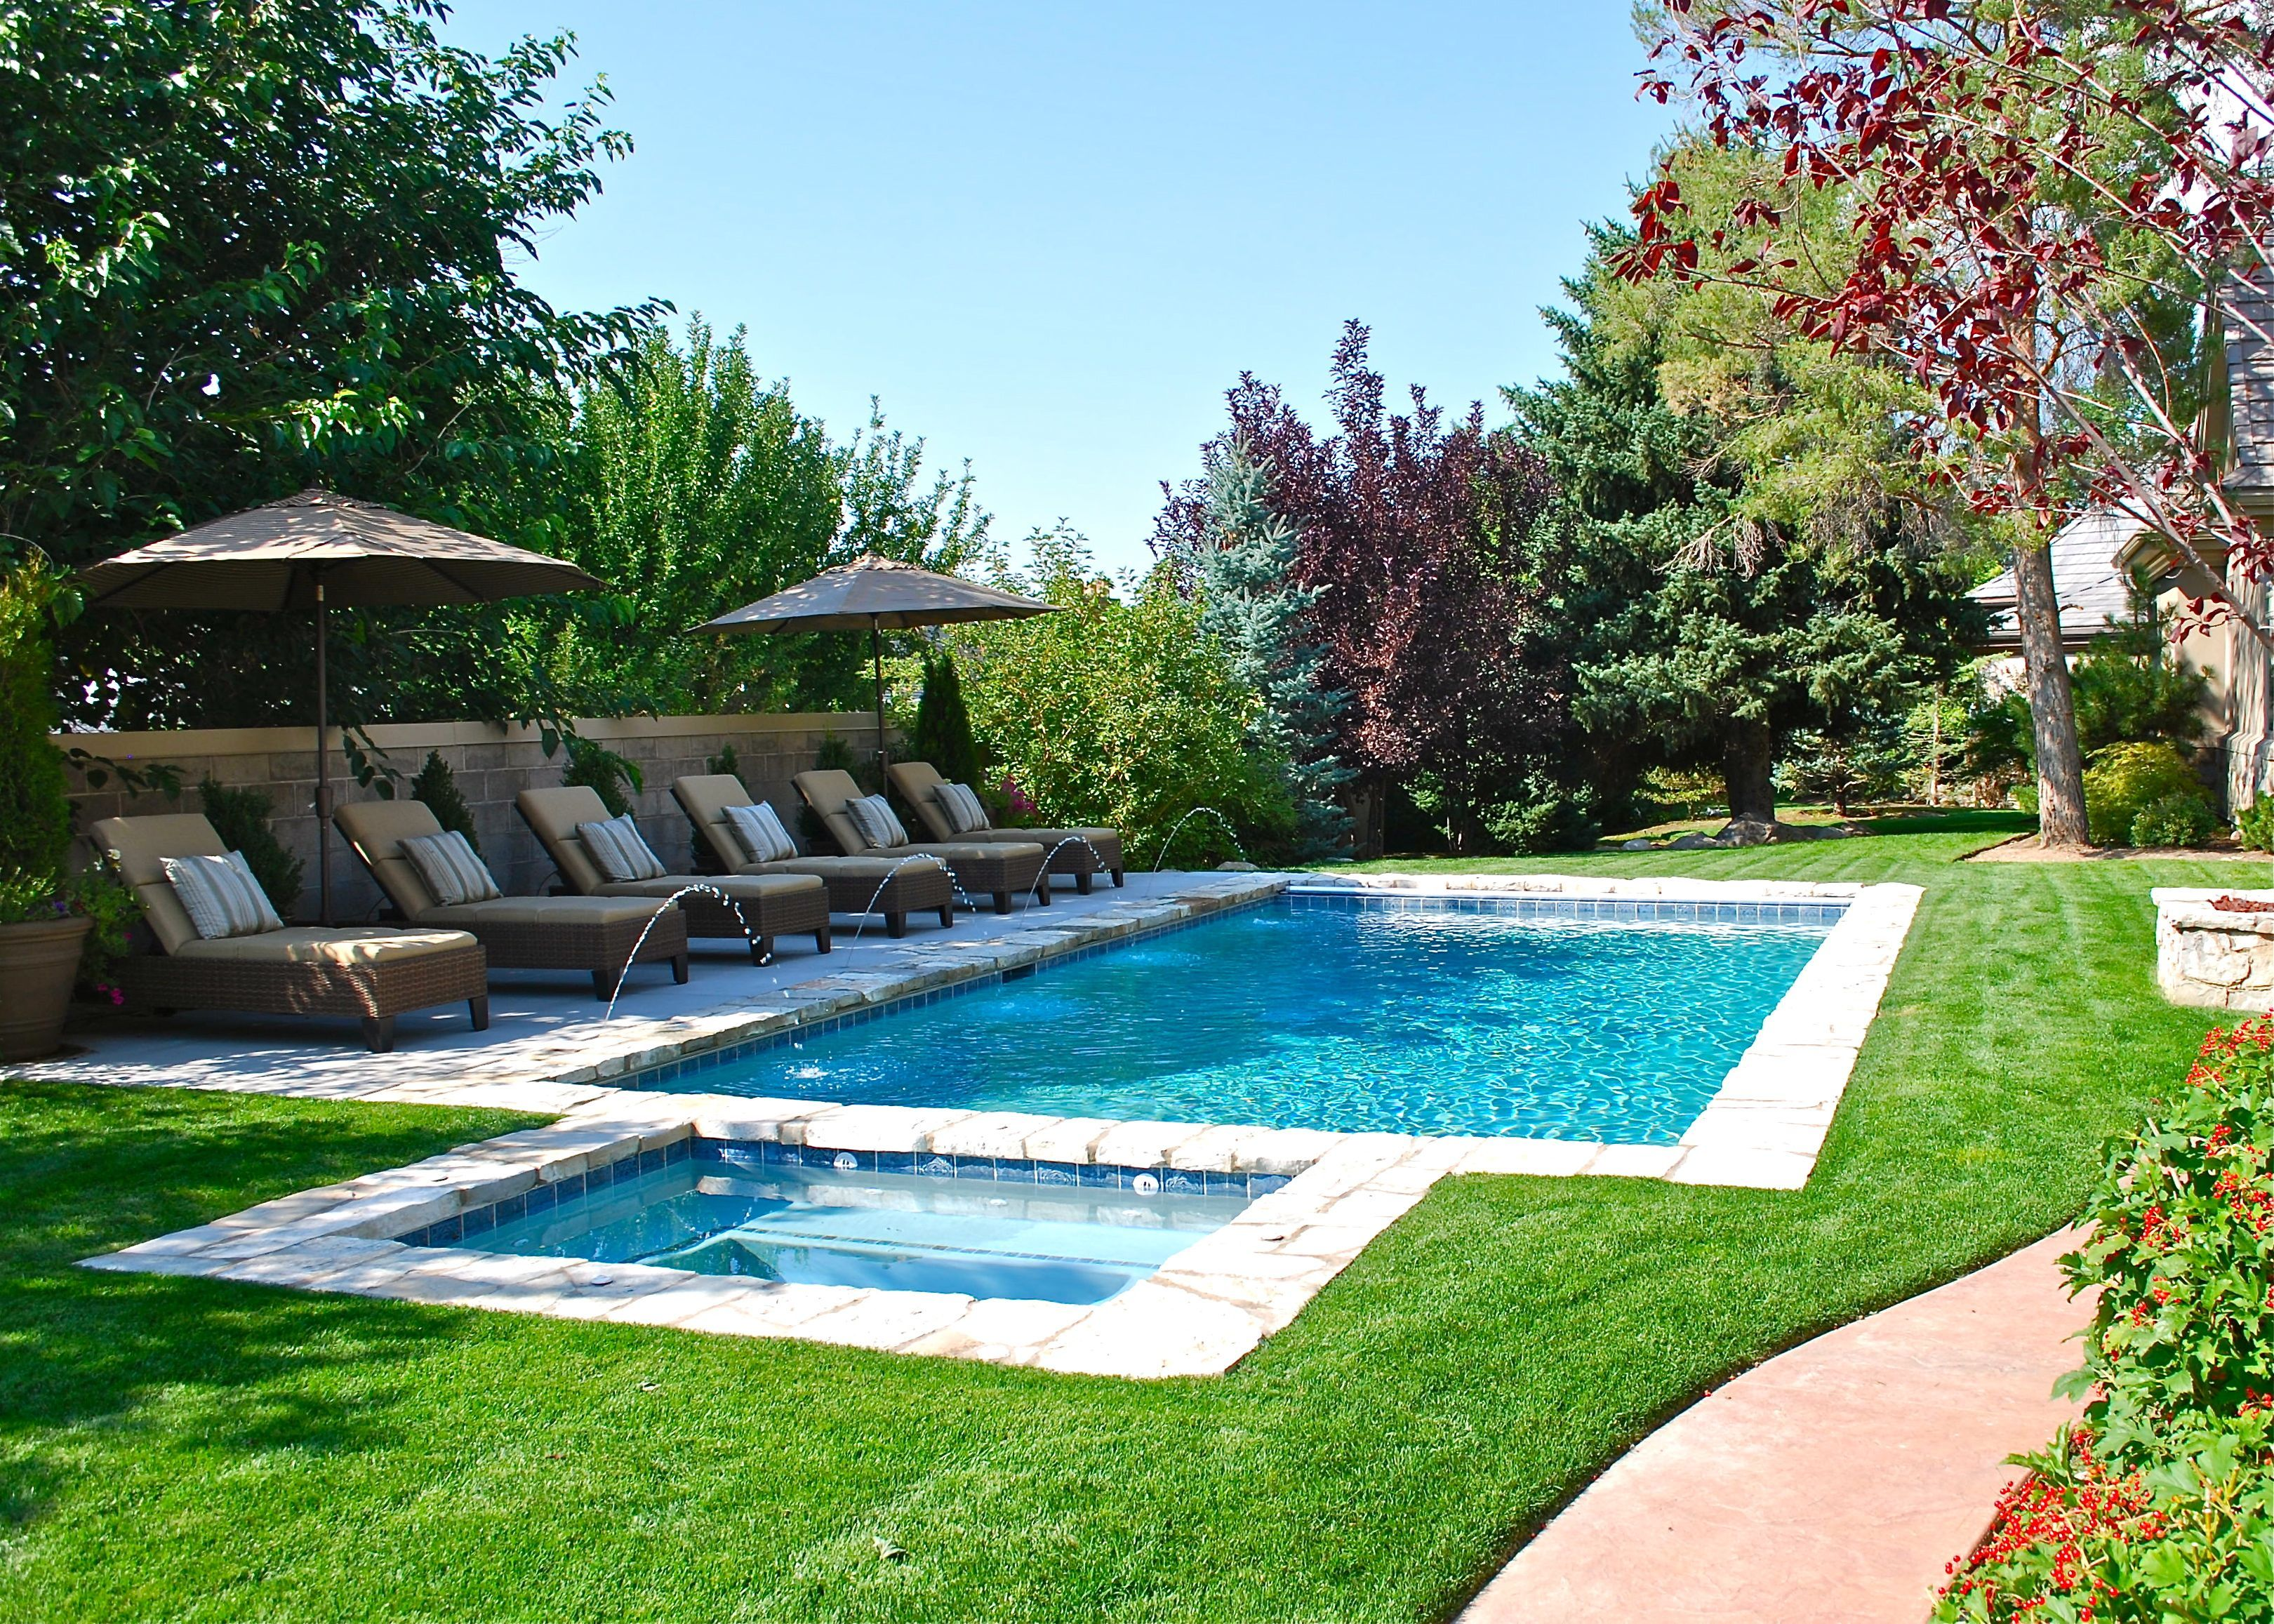 Backyard swimming pool with minimal decking deckjets and - Swimming pools for small backyards ...